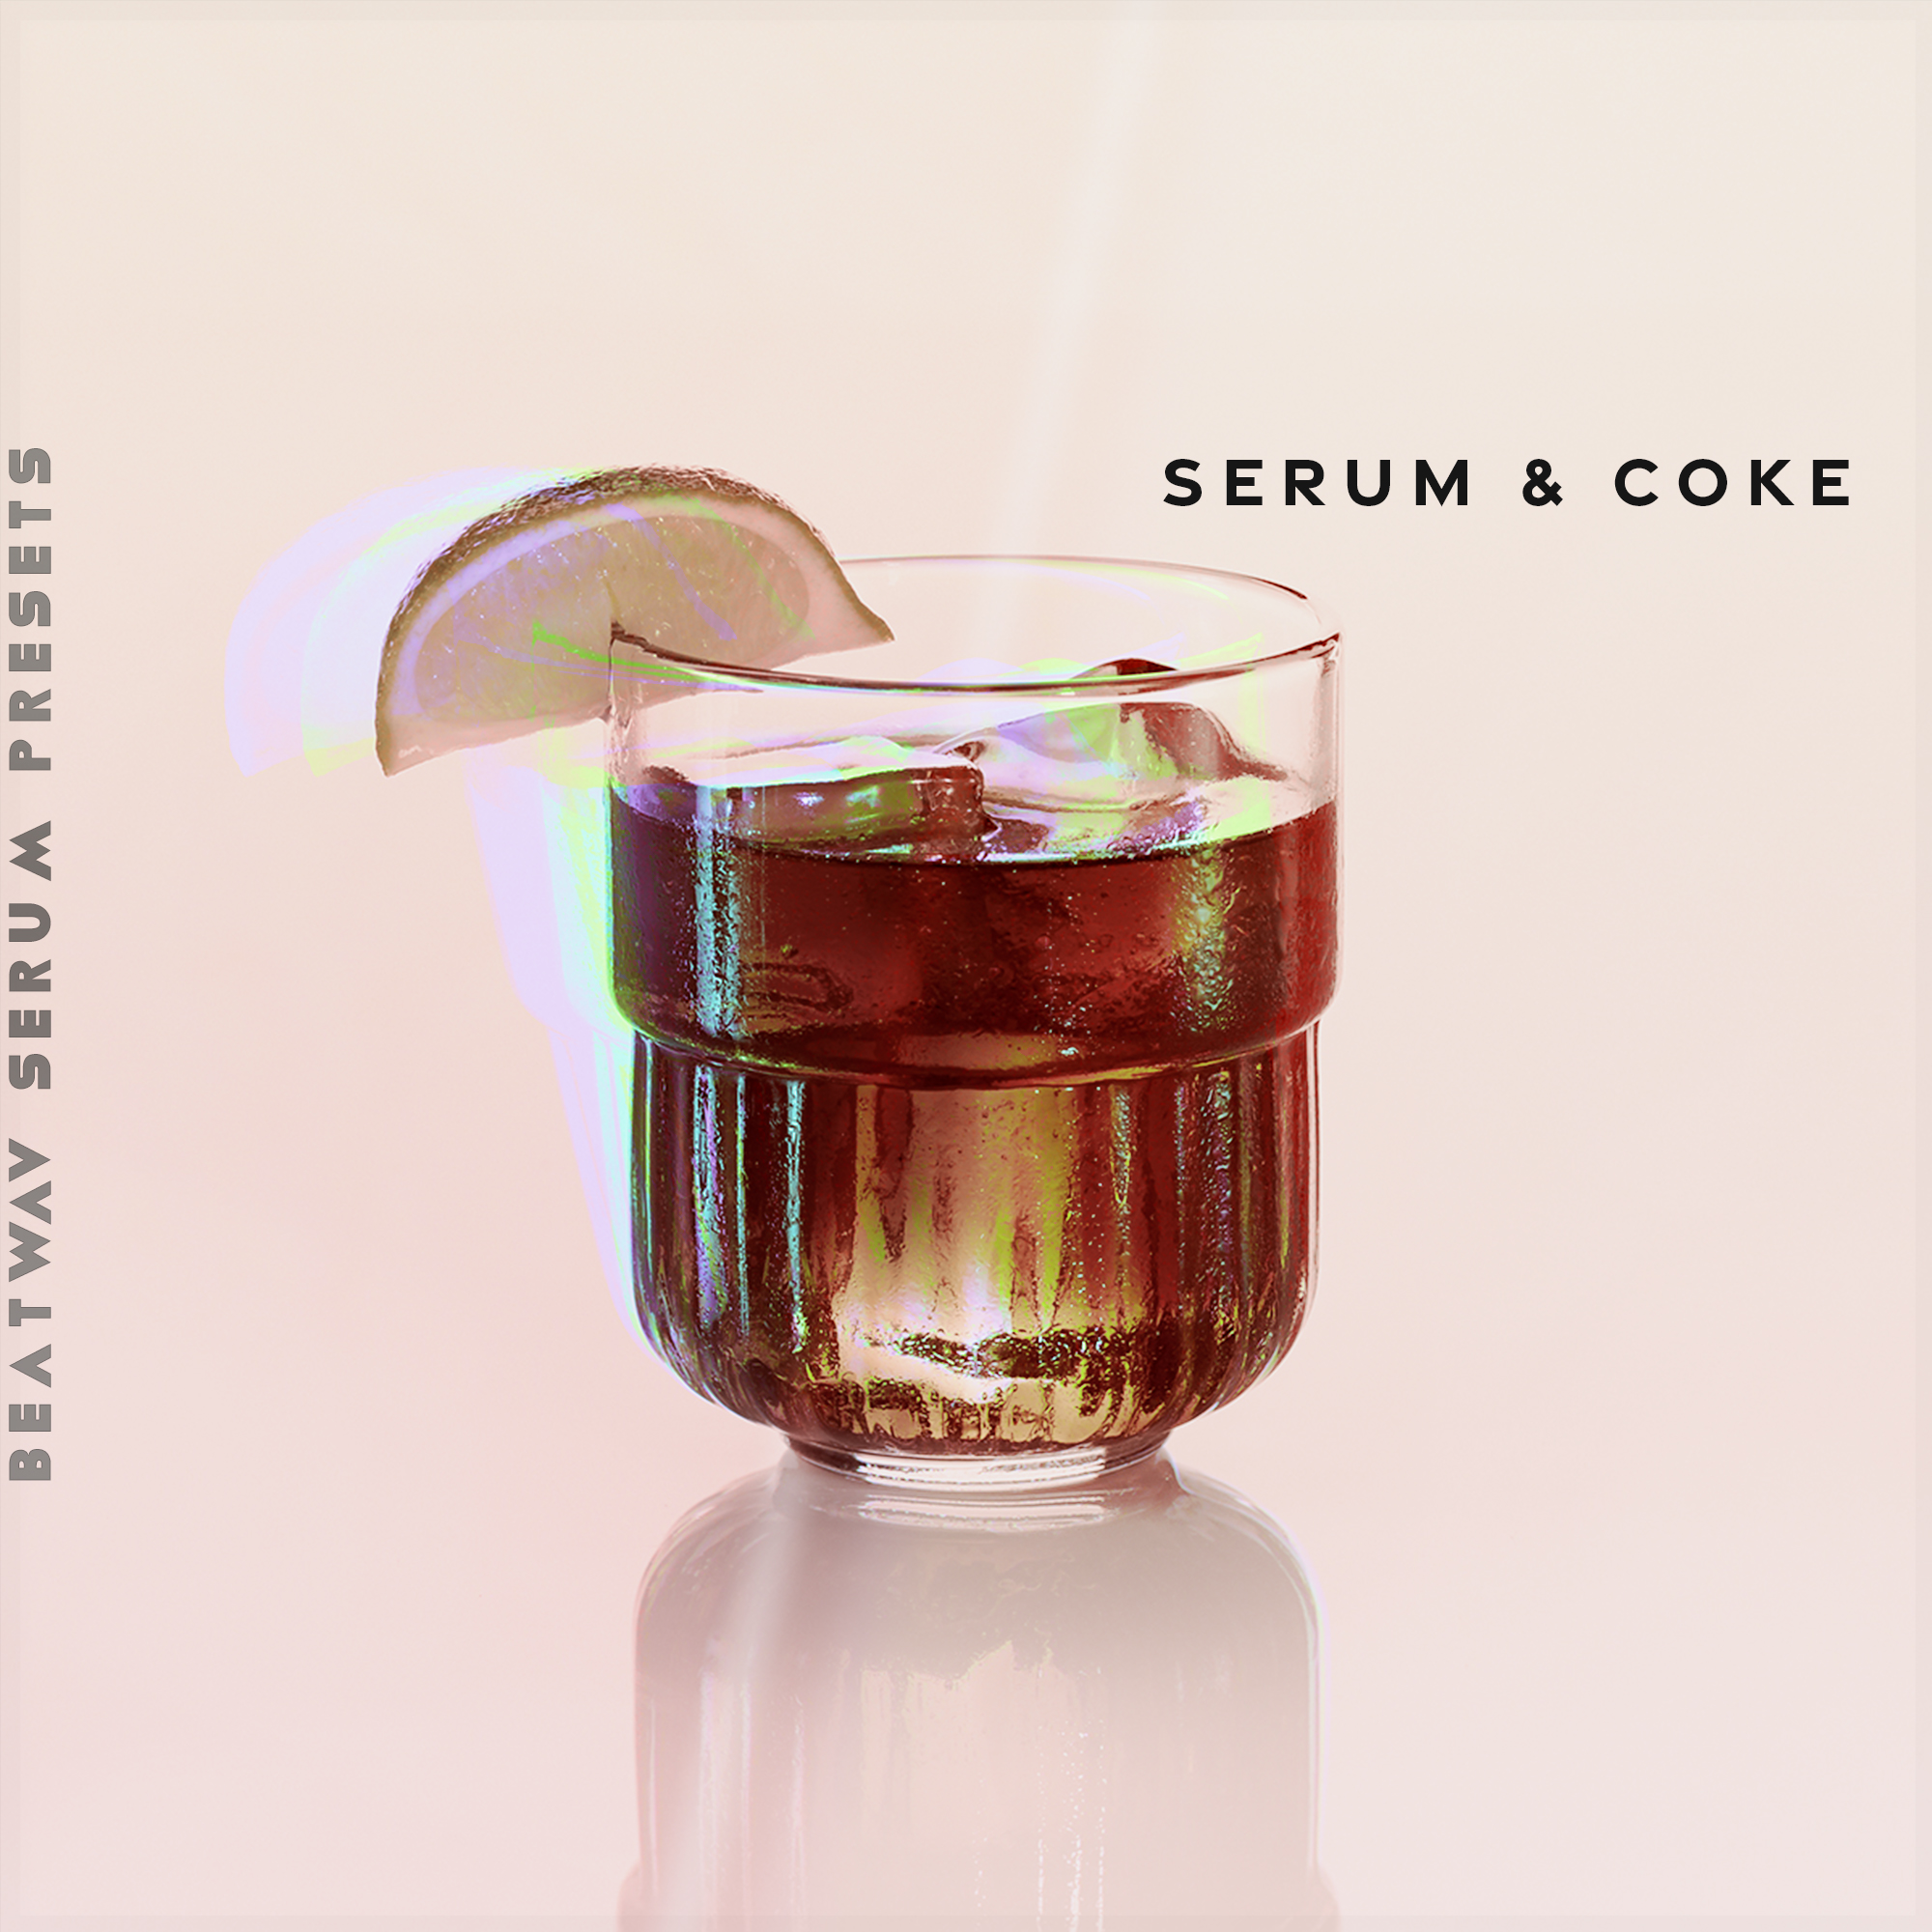 Serum & Coke Cover